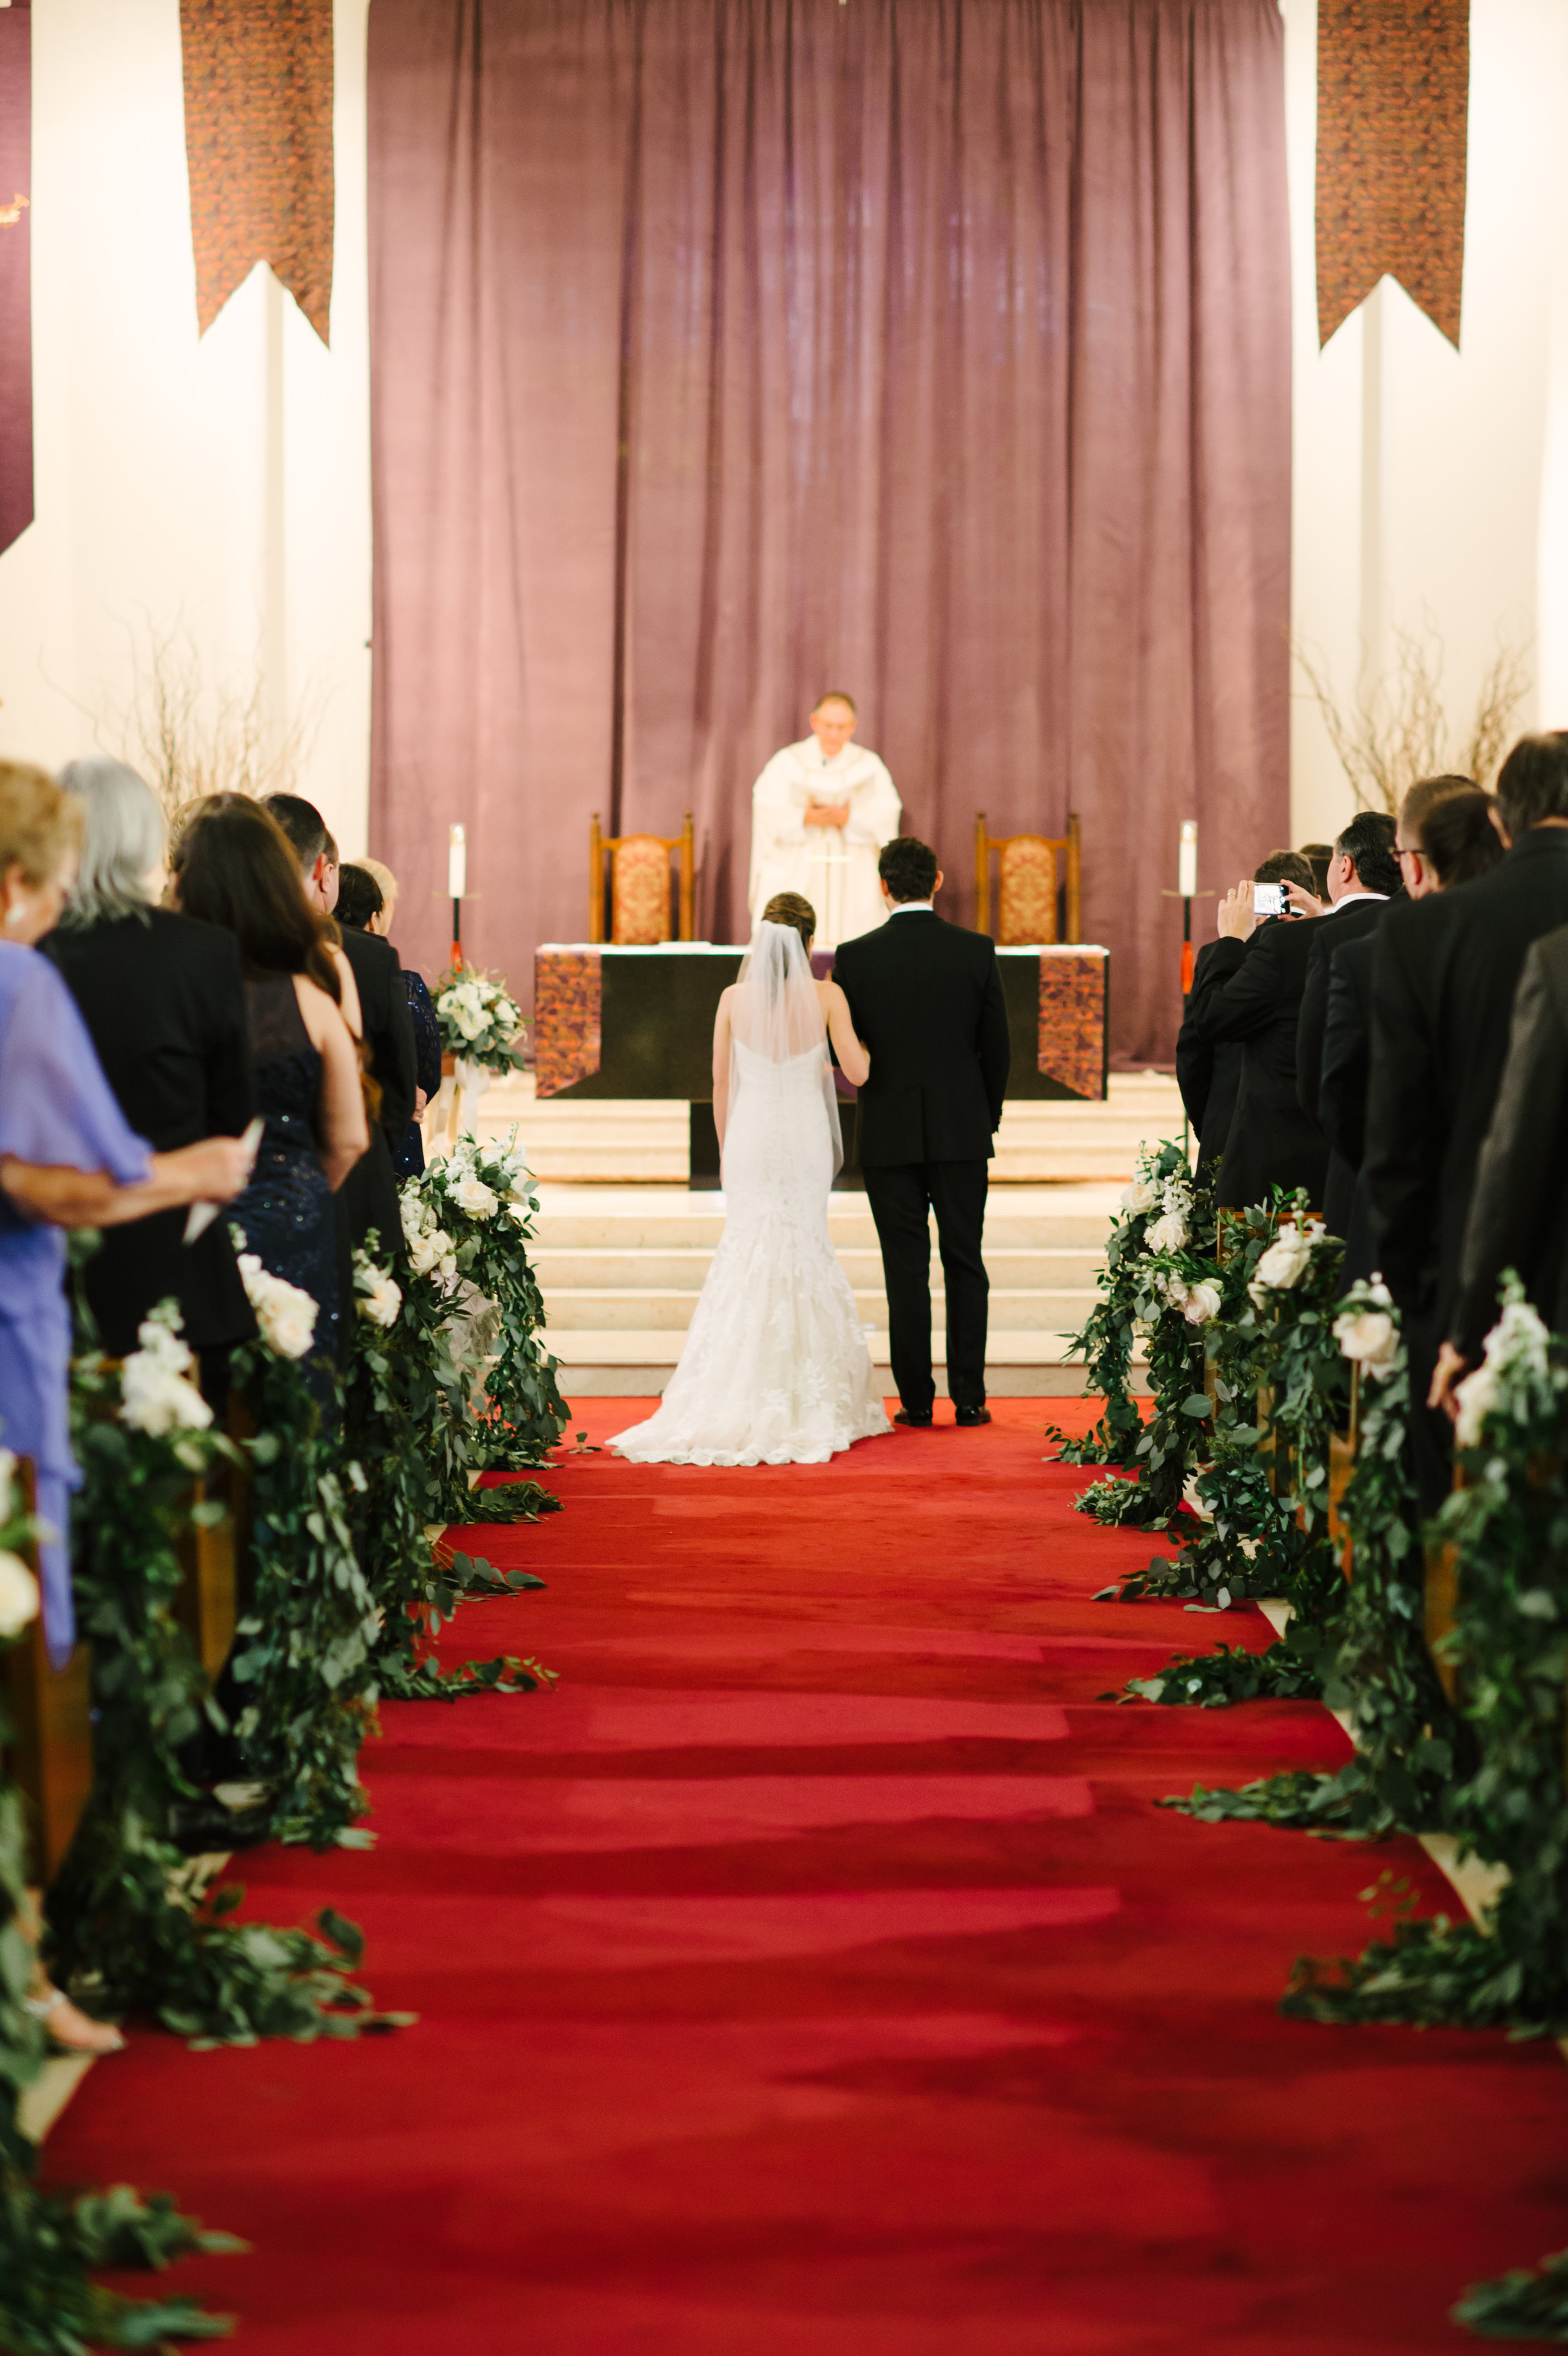 The couple held a traditional mass ceremony in the family's Catholic church.